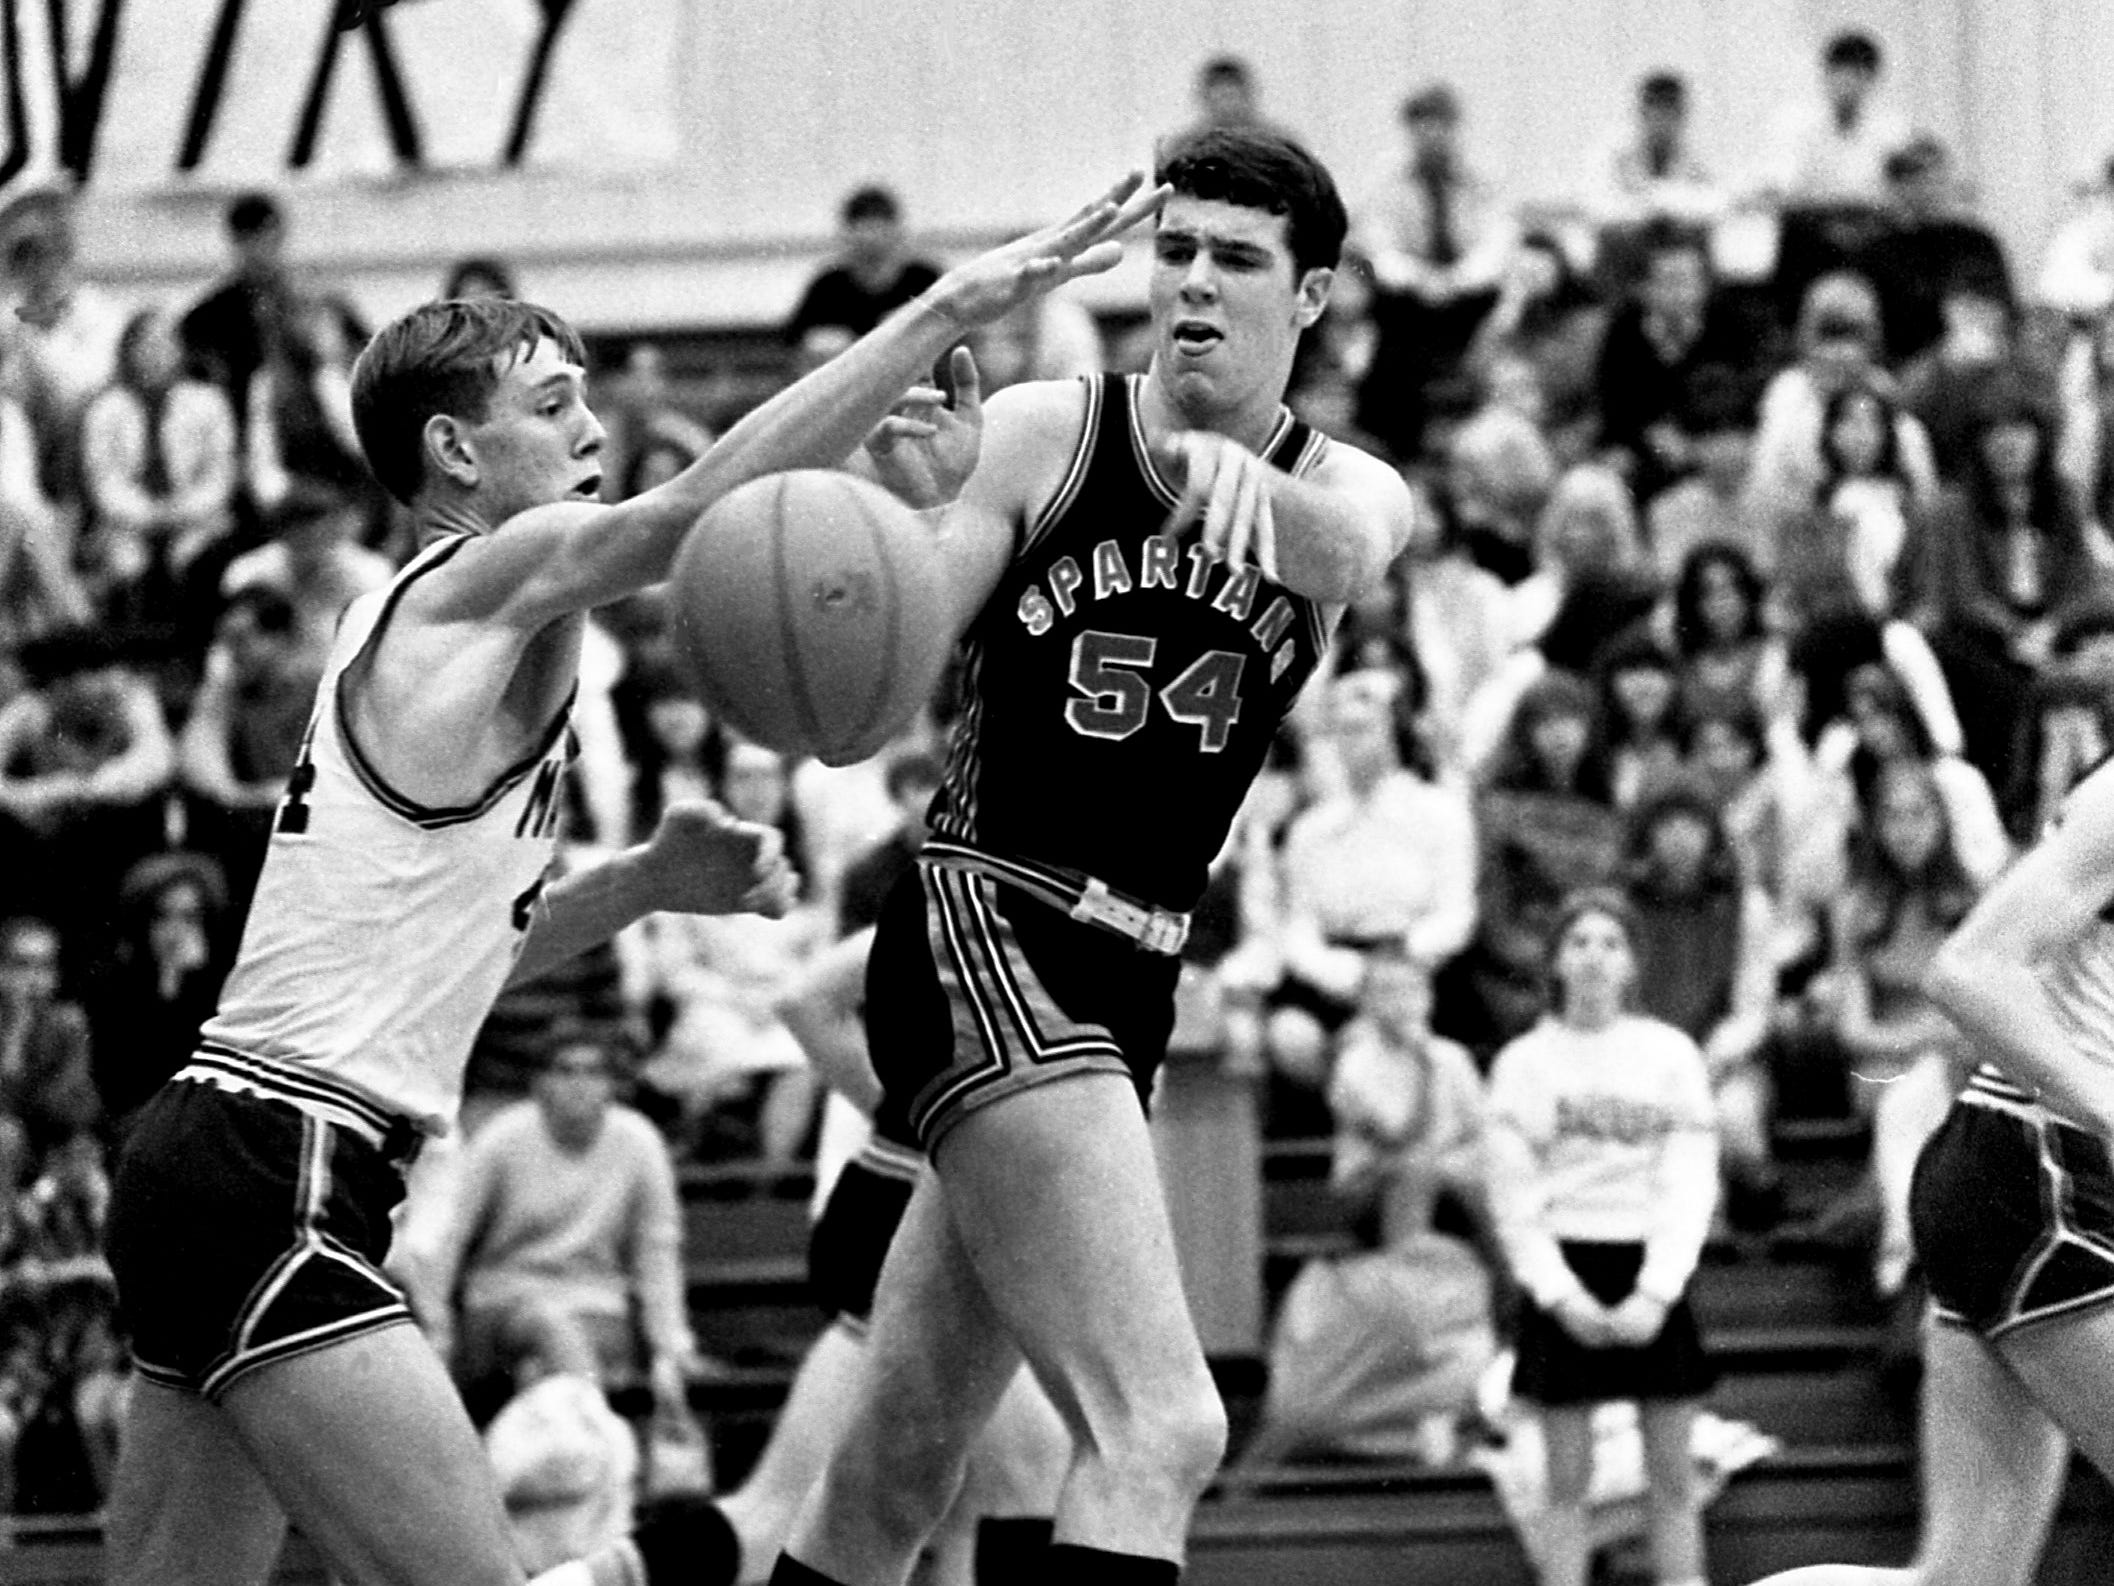 Stratford High 6-8 center Ray Maddux (54) battles with Maplewood High's Ken Lowery for control of the ball. Maddux, with 25 points and 21 rebounds, led Stratford to a 63-49 win on the road against Maplewood on Dec. 10, 1968.